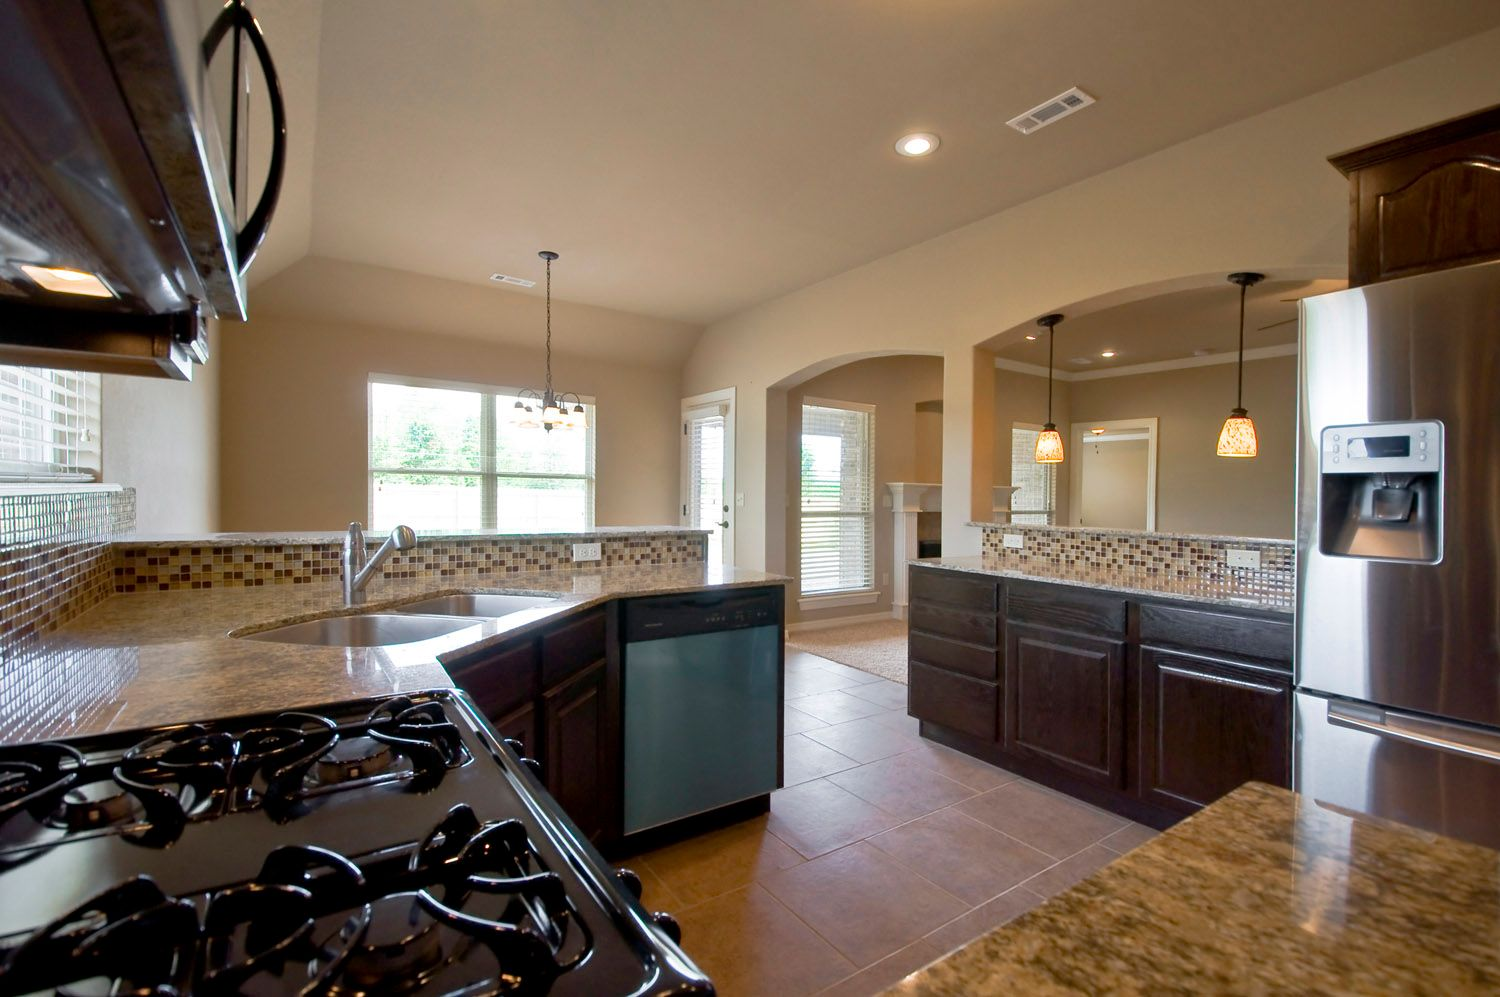 Kitchen featured in the Ouachita 1669 By Riverwood Homes - Arkansas in Fayetteville, AR